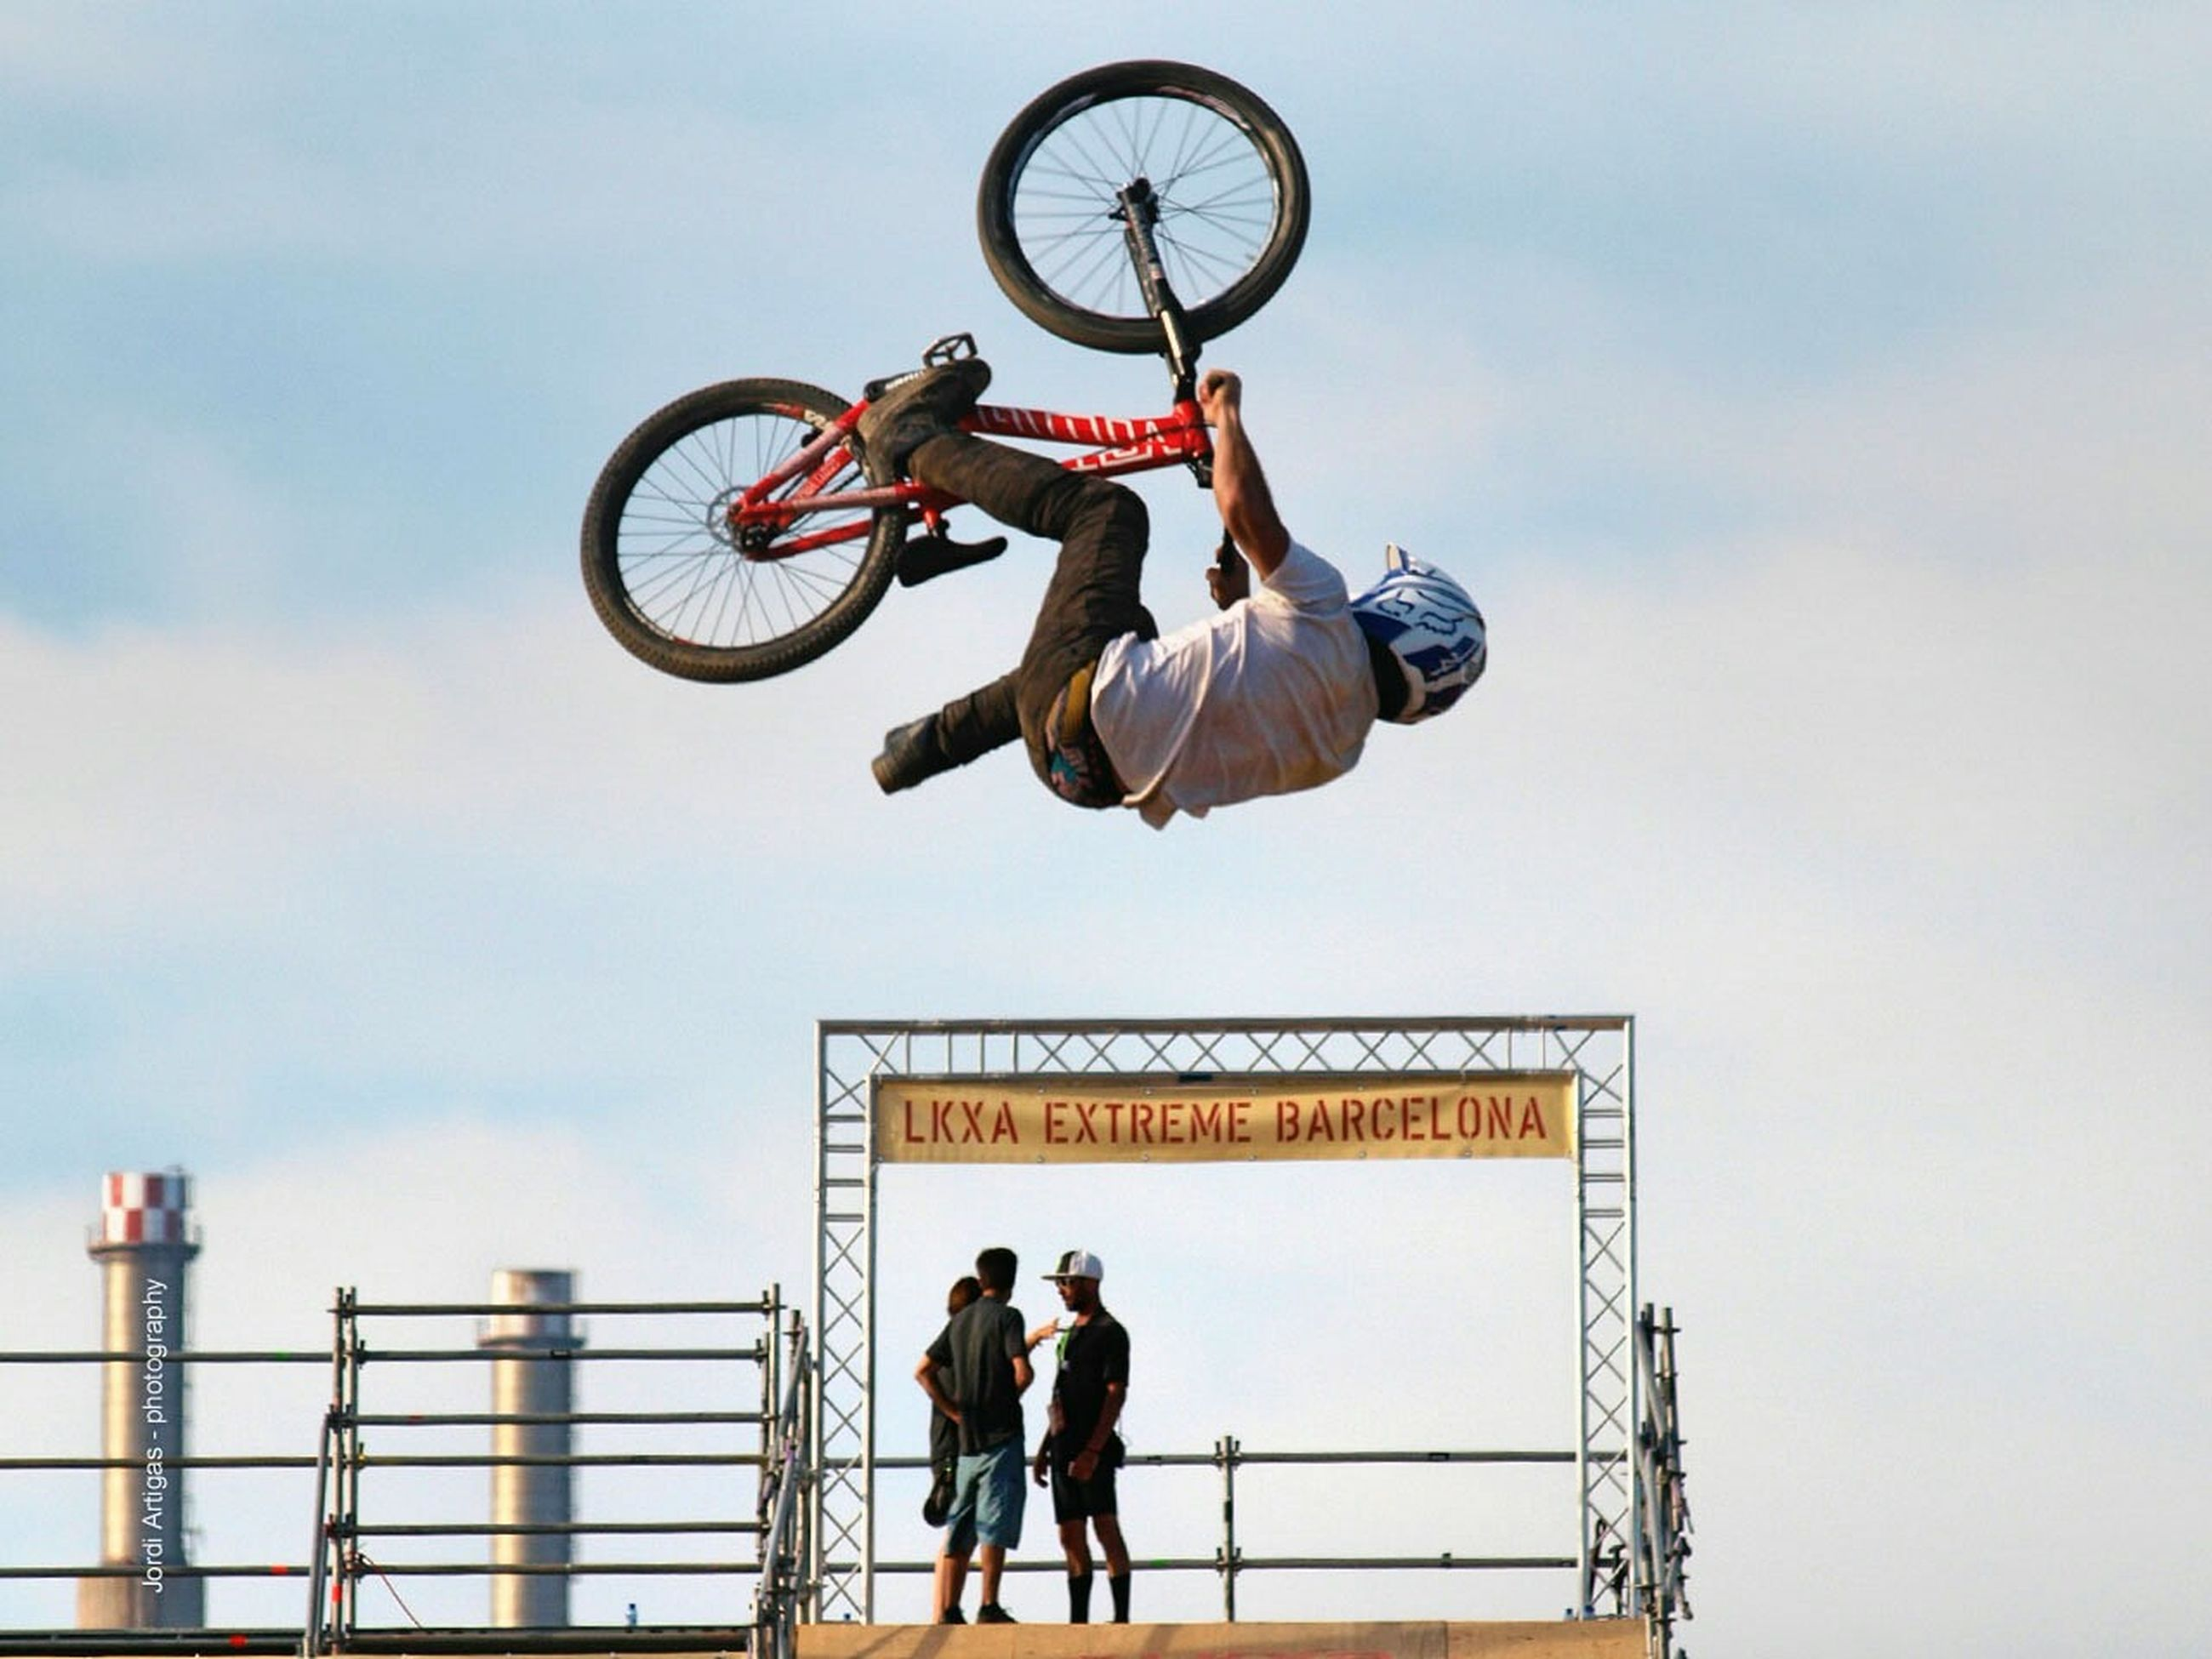 lifestyles, men, leisure activity, communication, text, sky, full length, low angle view, bicycle, transportation, western script, risk, stunt, sport, holding, extreme sports, standing